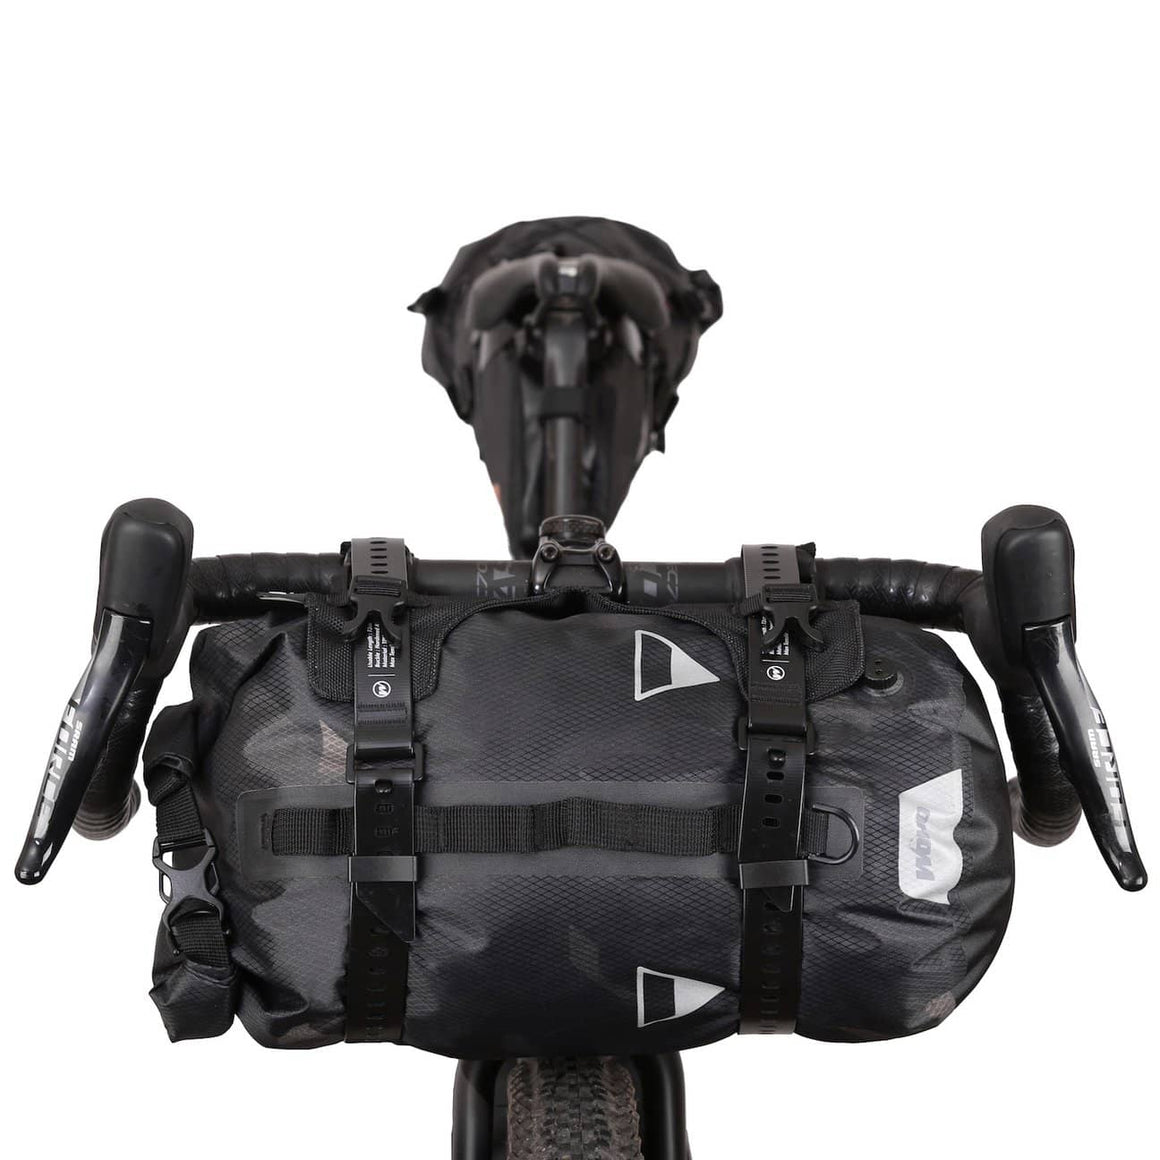 XTOURING Handlebar Harness Black + 15L DRY Bag Cyber-Camo Diamond Black Bundle - Cycle Touring Life